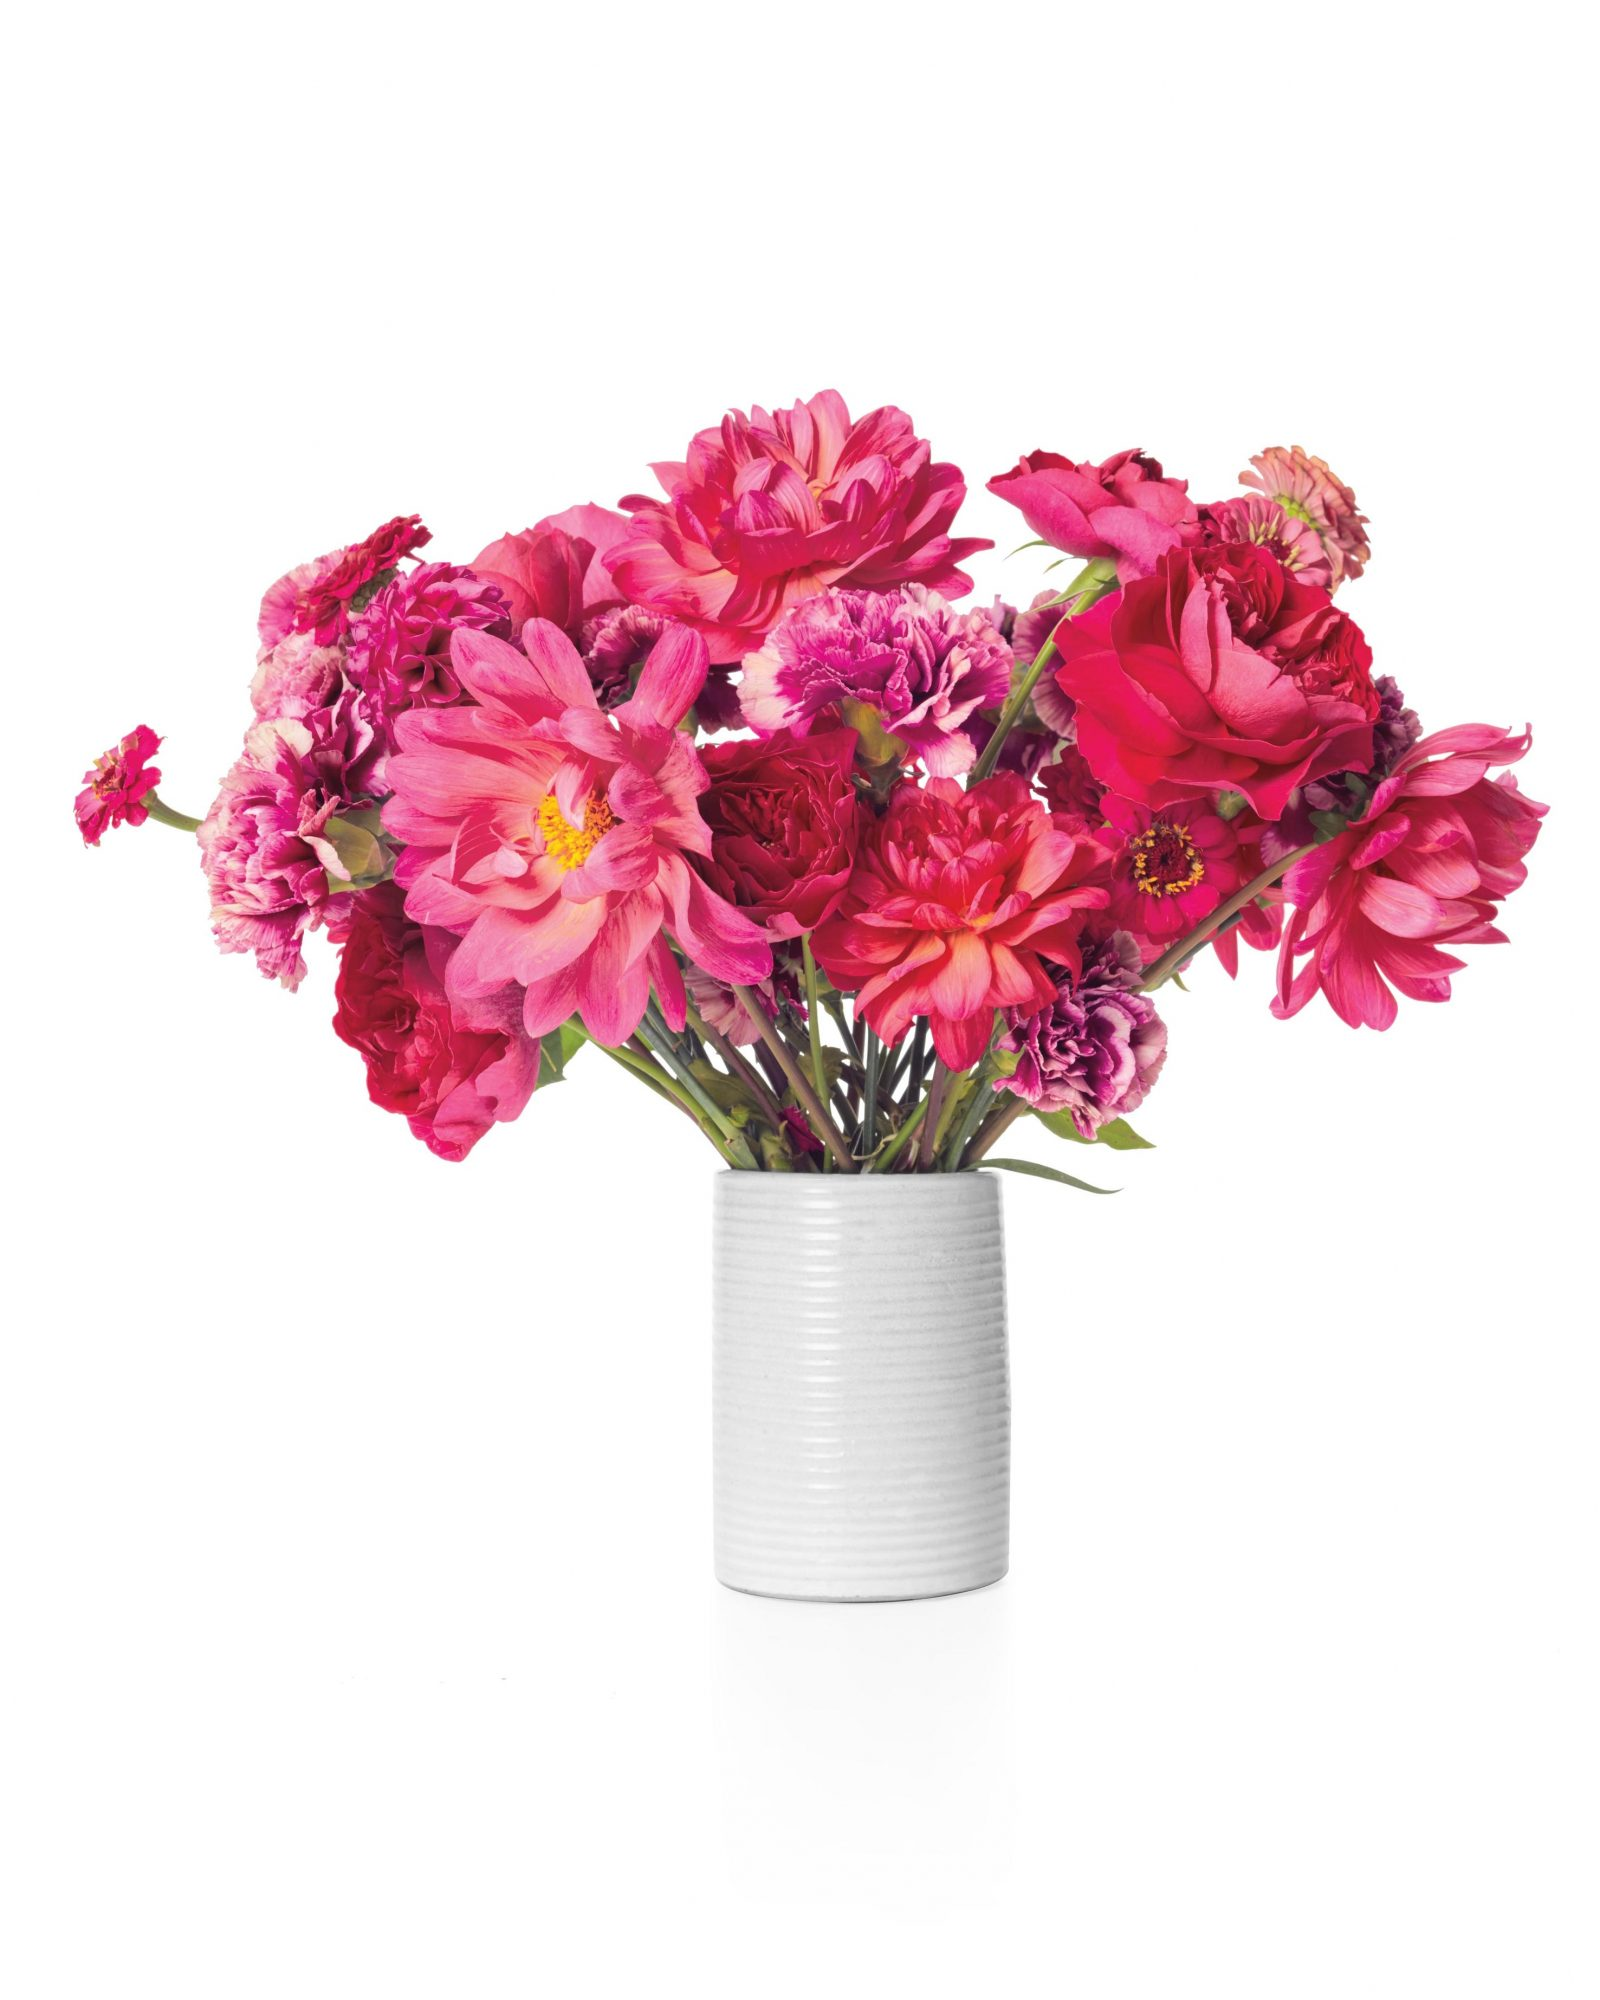 mpink-flower-arrangement-199-d112637.jpg